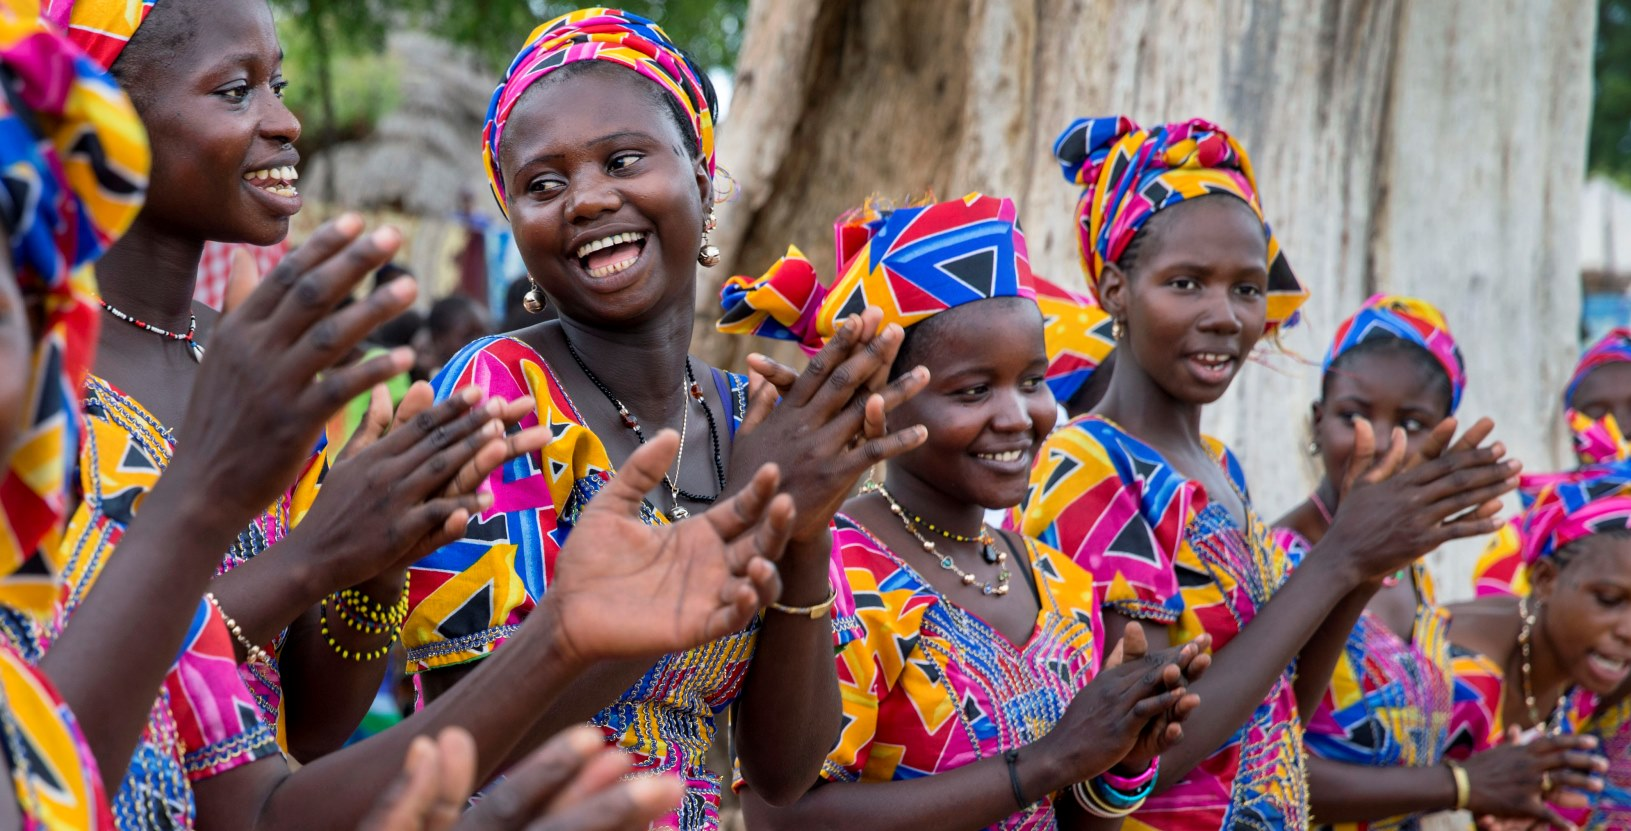 Young women in Senegal. PHOTO BY JONATHAN TORGOVNIK/REPORTAGE BY GETTY IMAGES